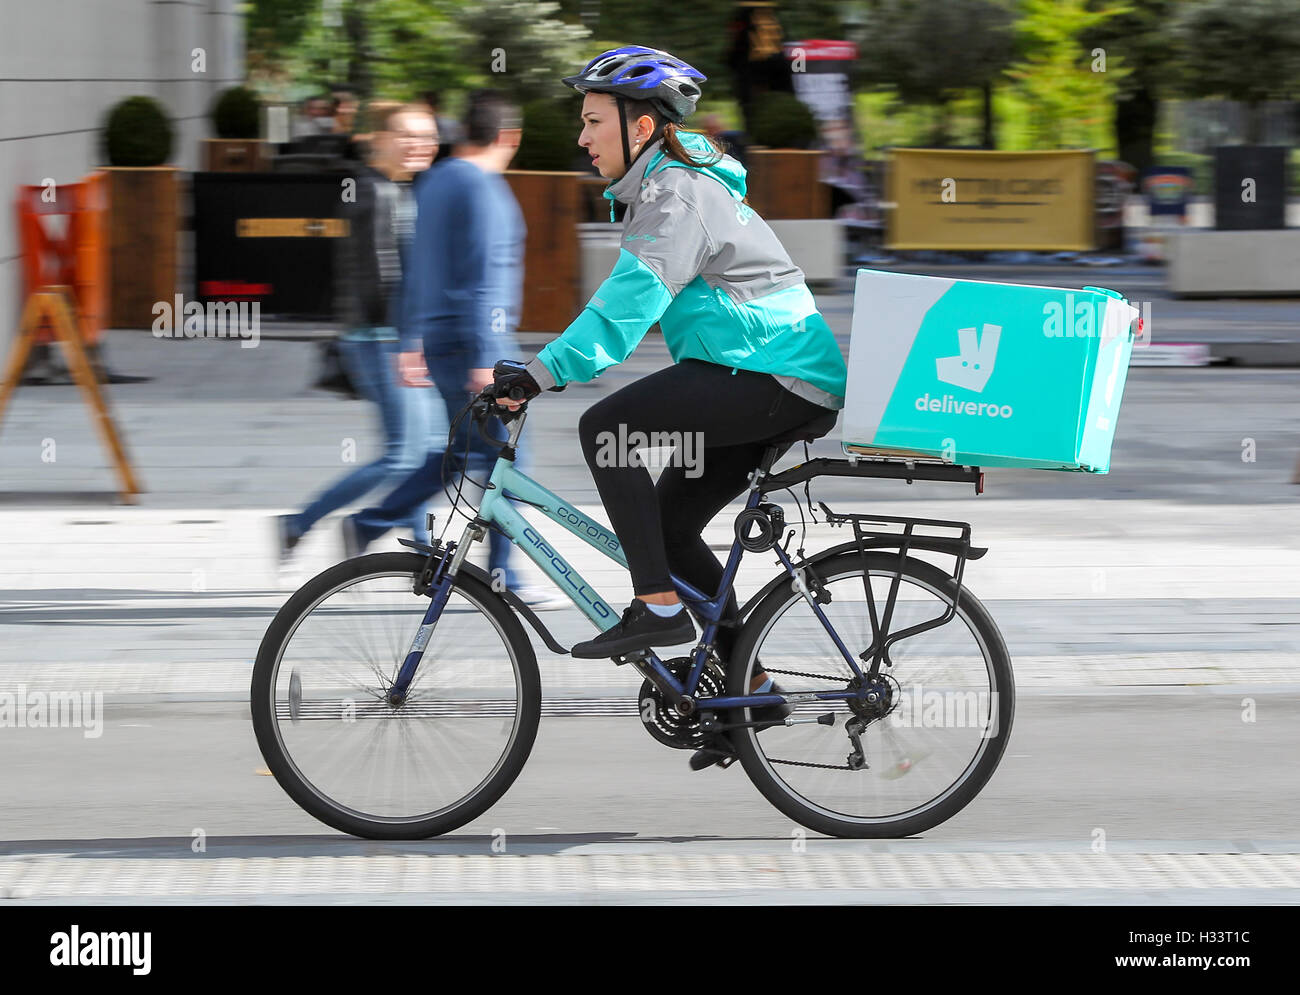 A female Deliveroo cyclist riding with a package on her bike - Stock Image